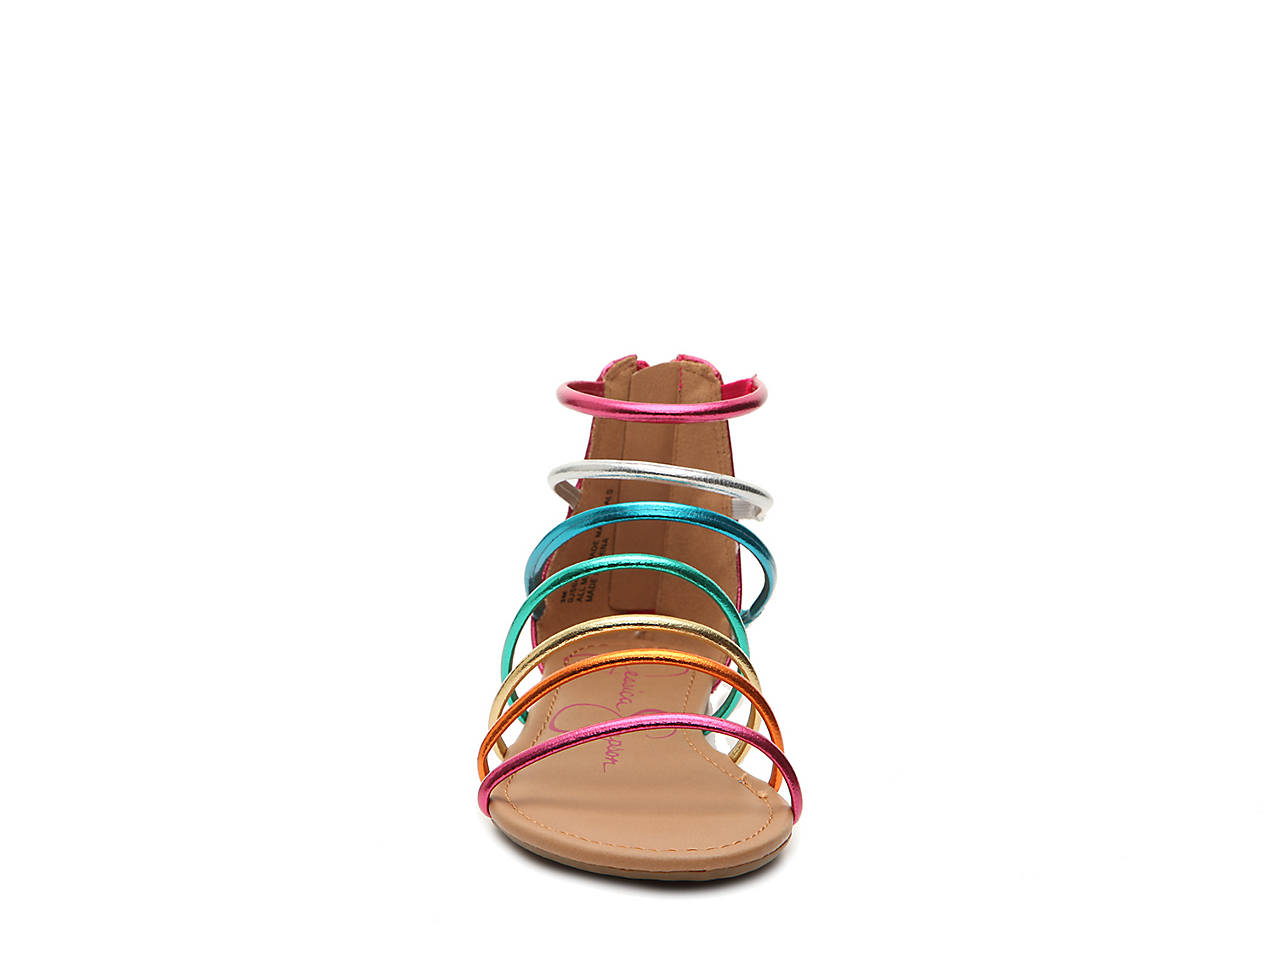 d16112b9006 Jessica Simpson Comet Toddler   Youth Gladiator Sandal Kids Shoes